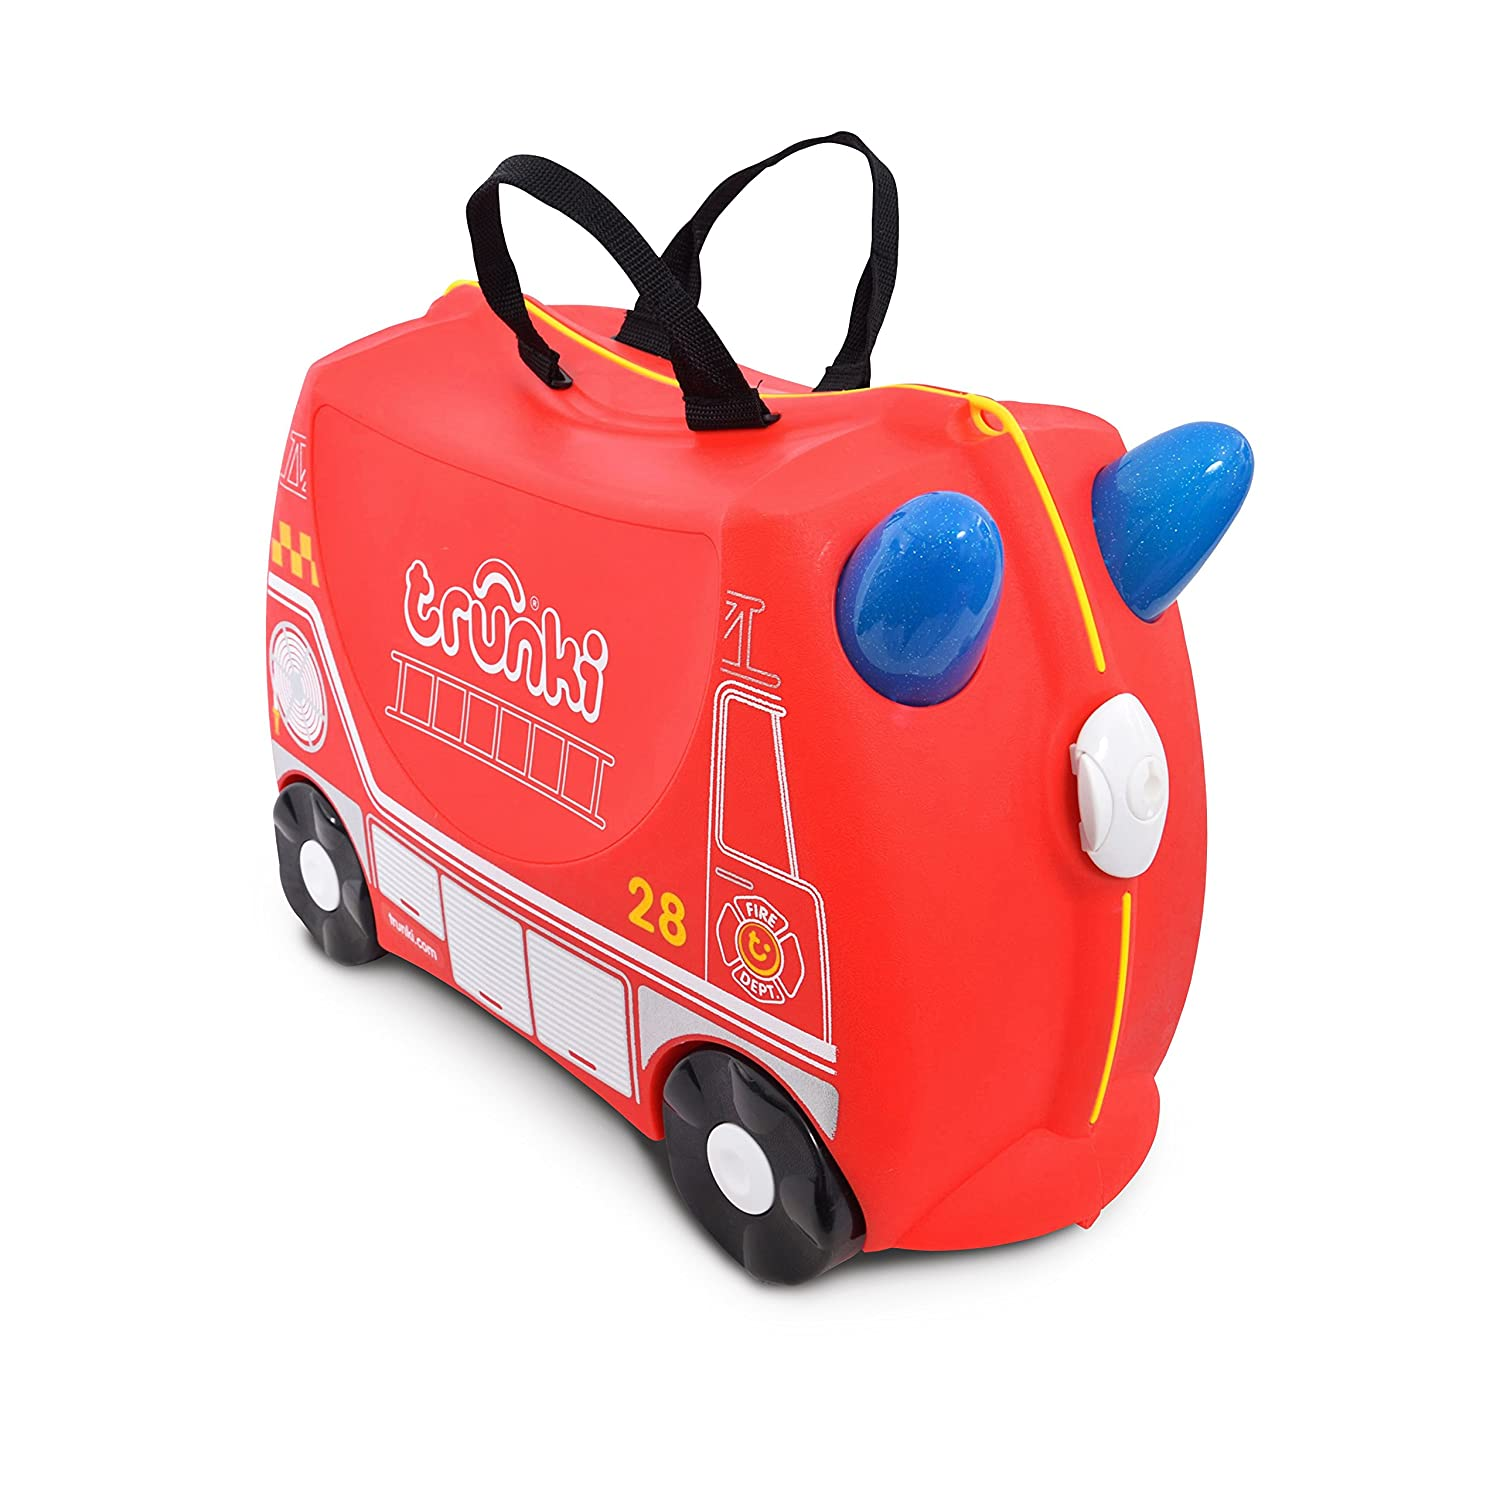 Trunki Kinderkoffer amazon